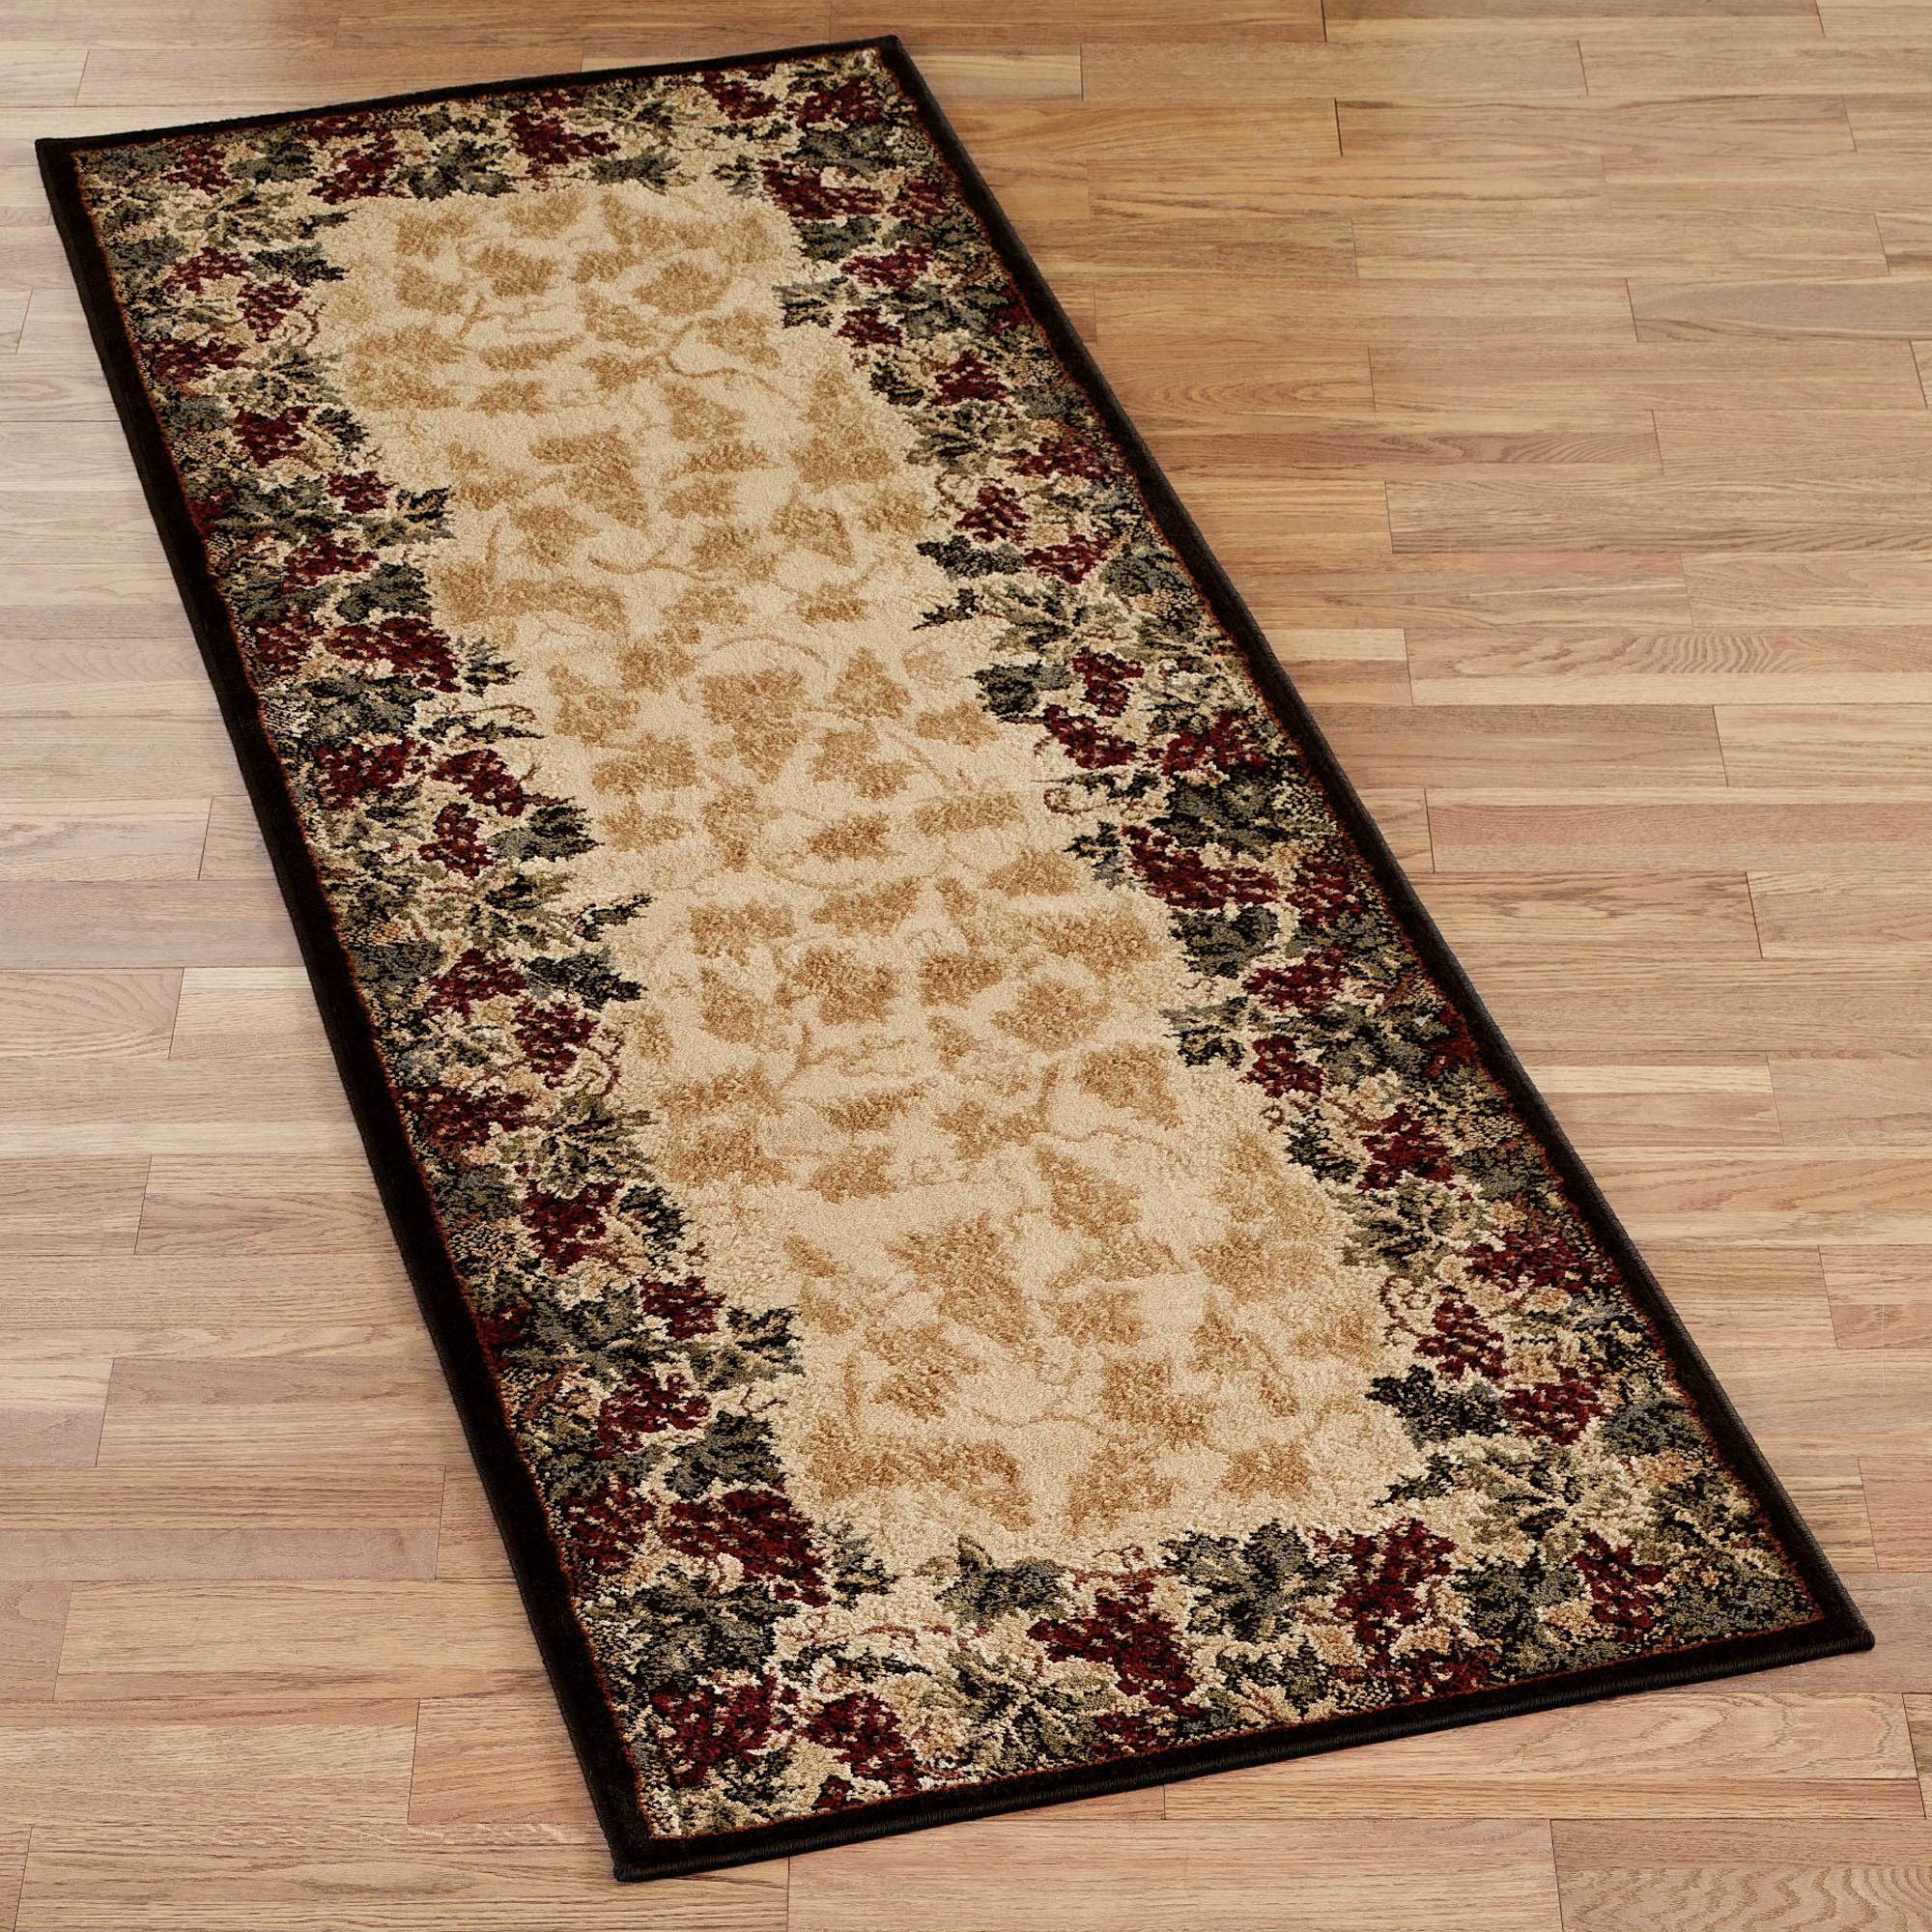 Different ideas for using runner rugs